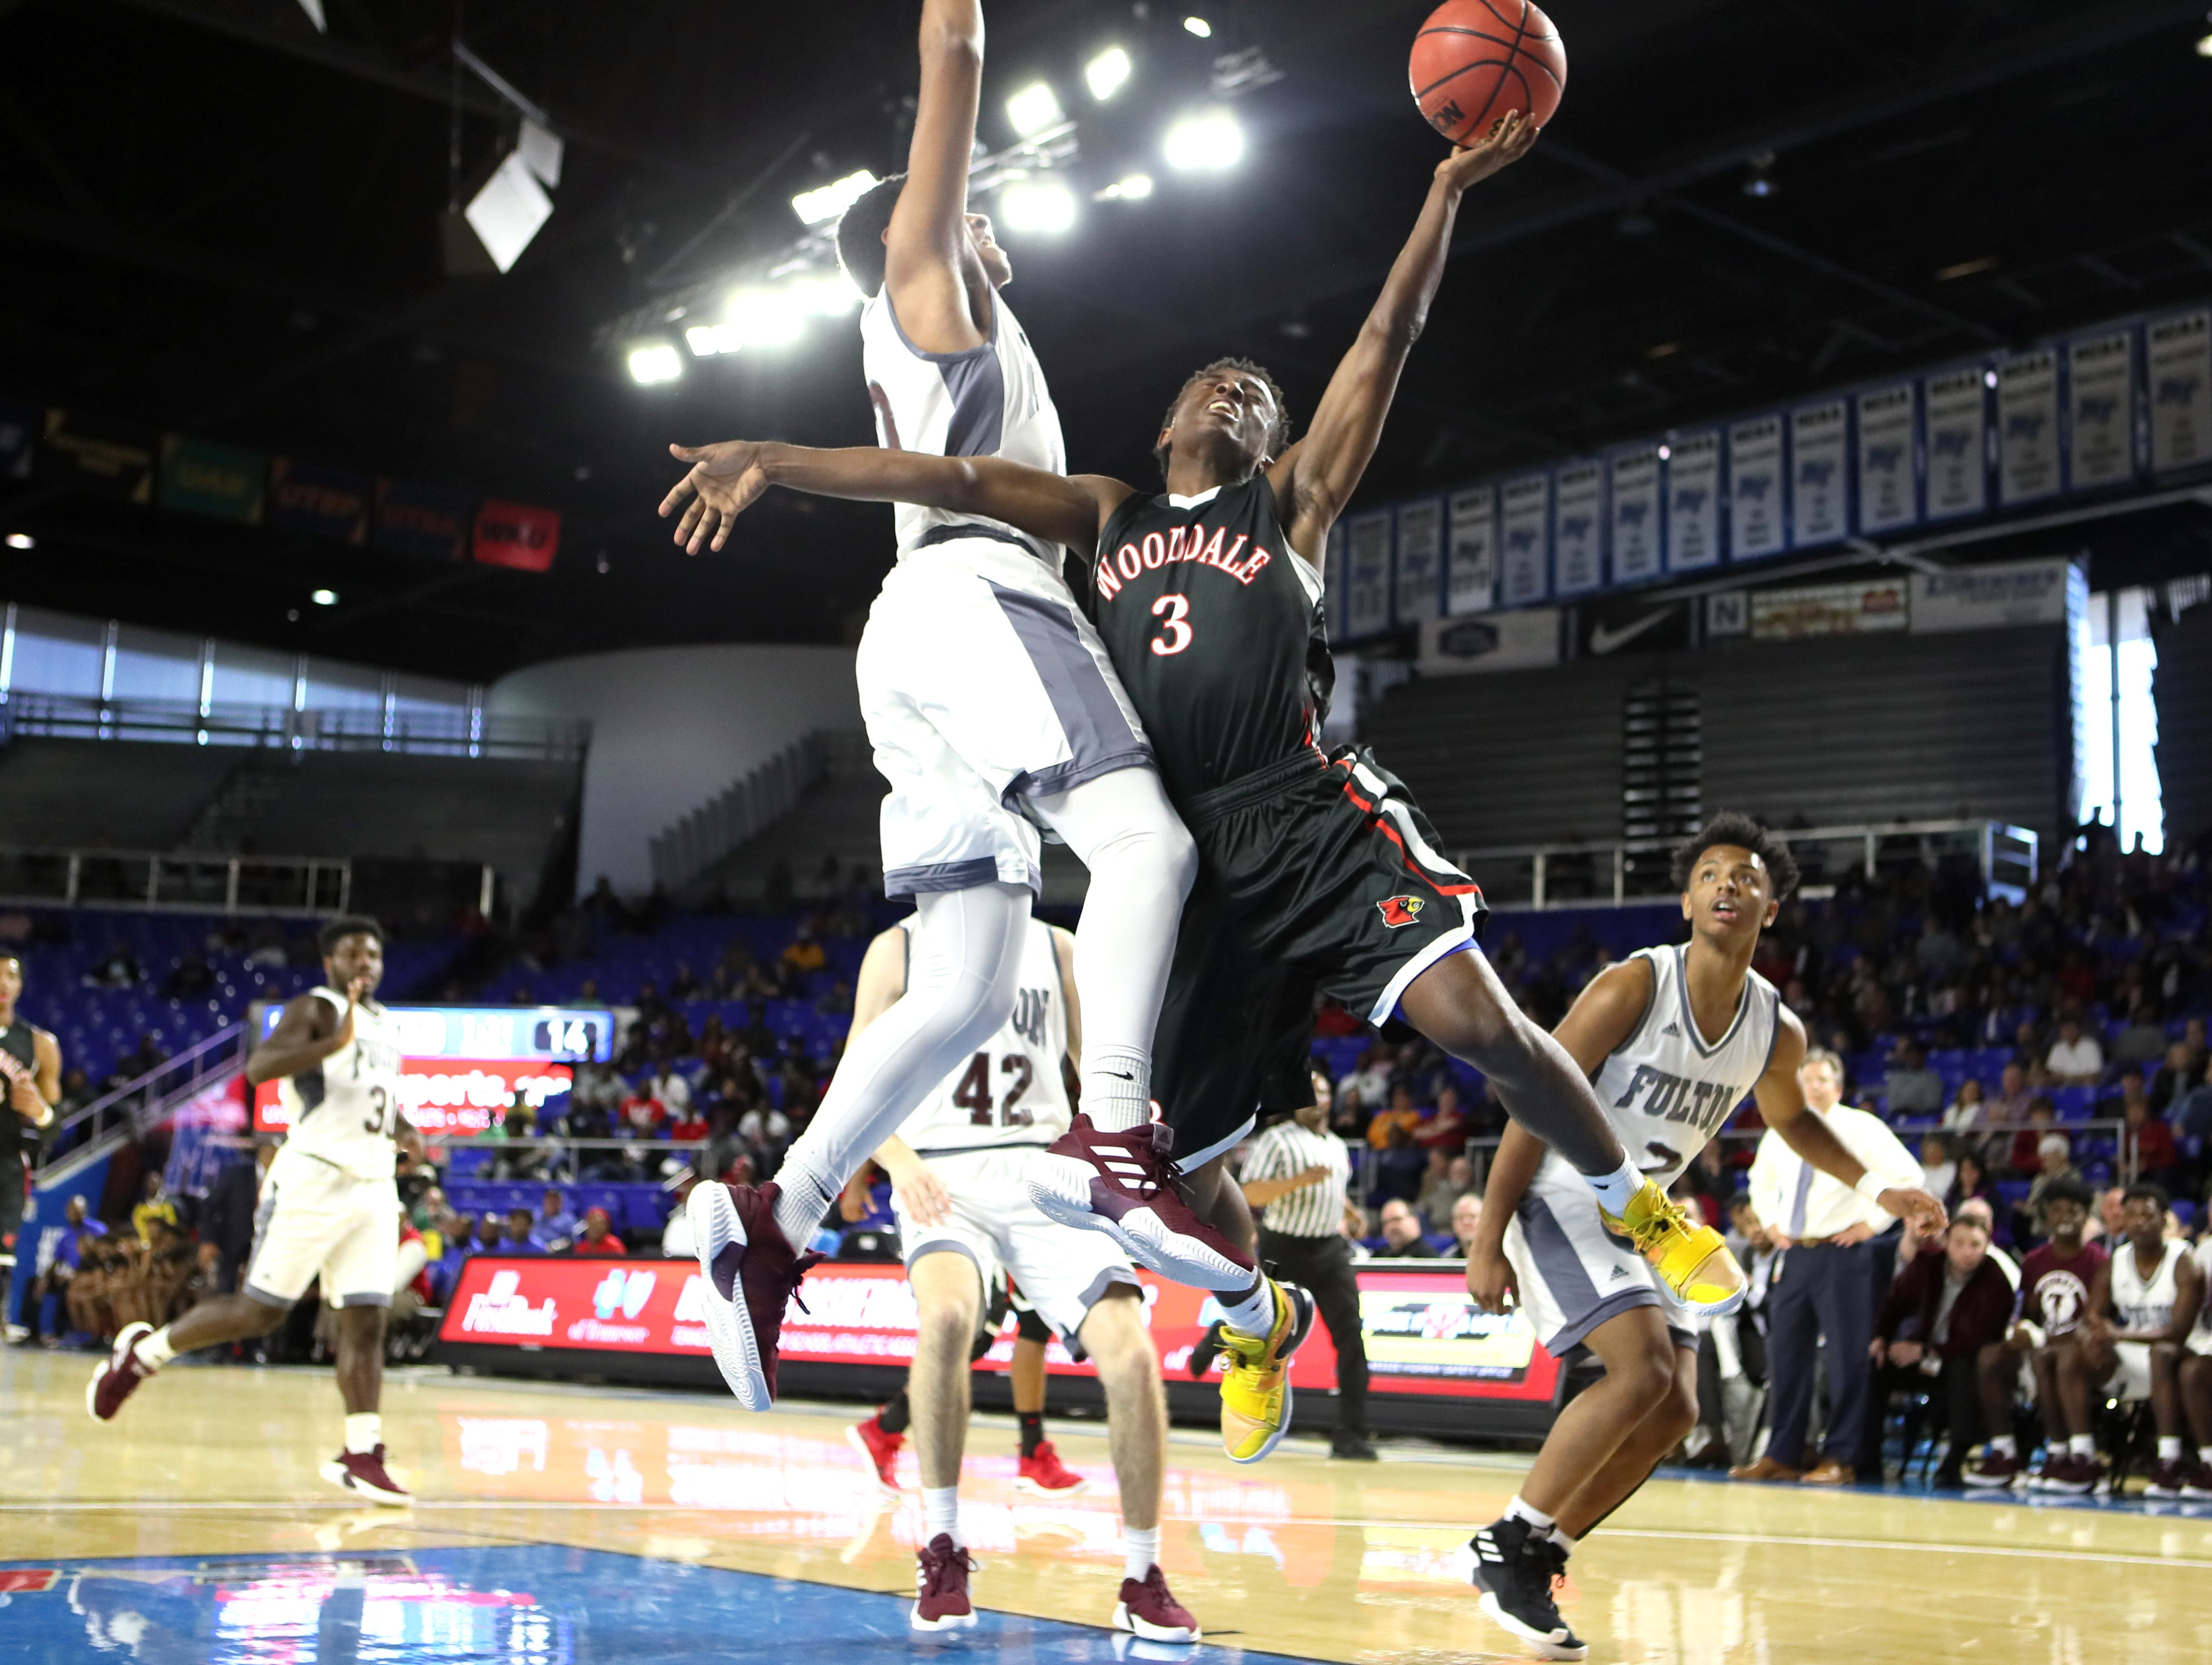 Wooddale's Alvin Miles is fouled on a shot attempt by Fulton's Trey West during the Class AA boys basketball state championship game at the Murphy Center in Murfreesboro, Tenn. on Saturday, March 16, 2019.